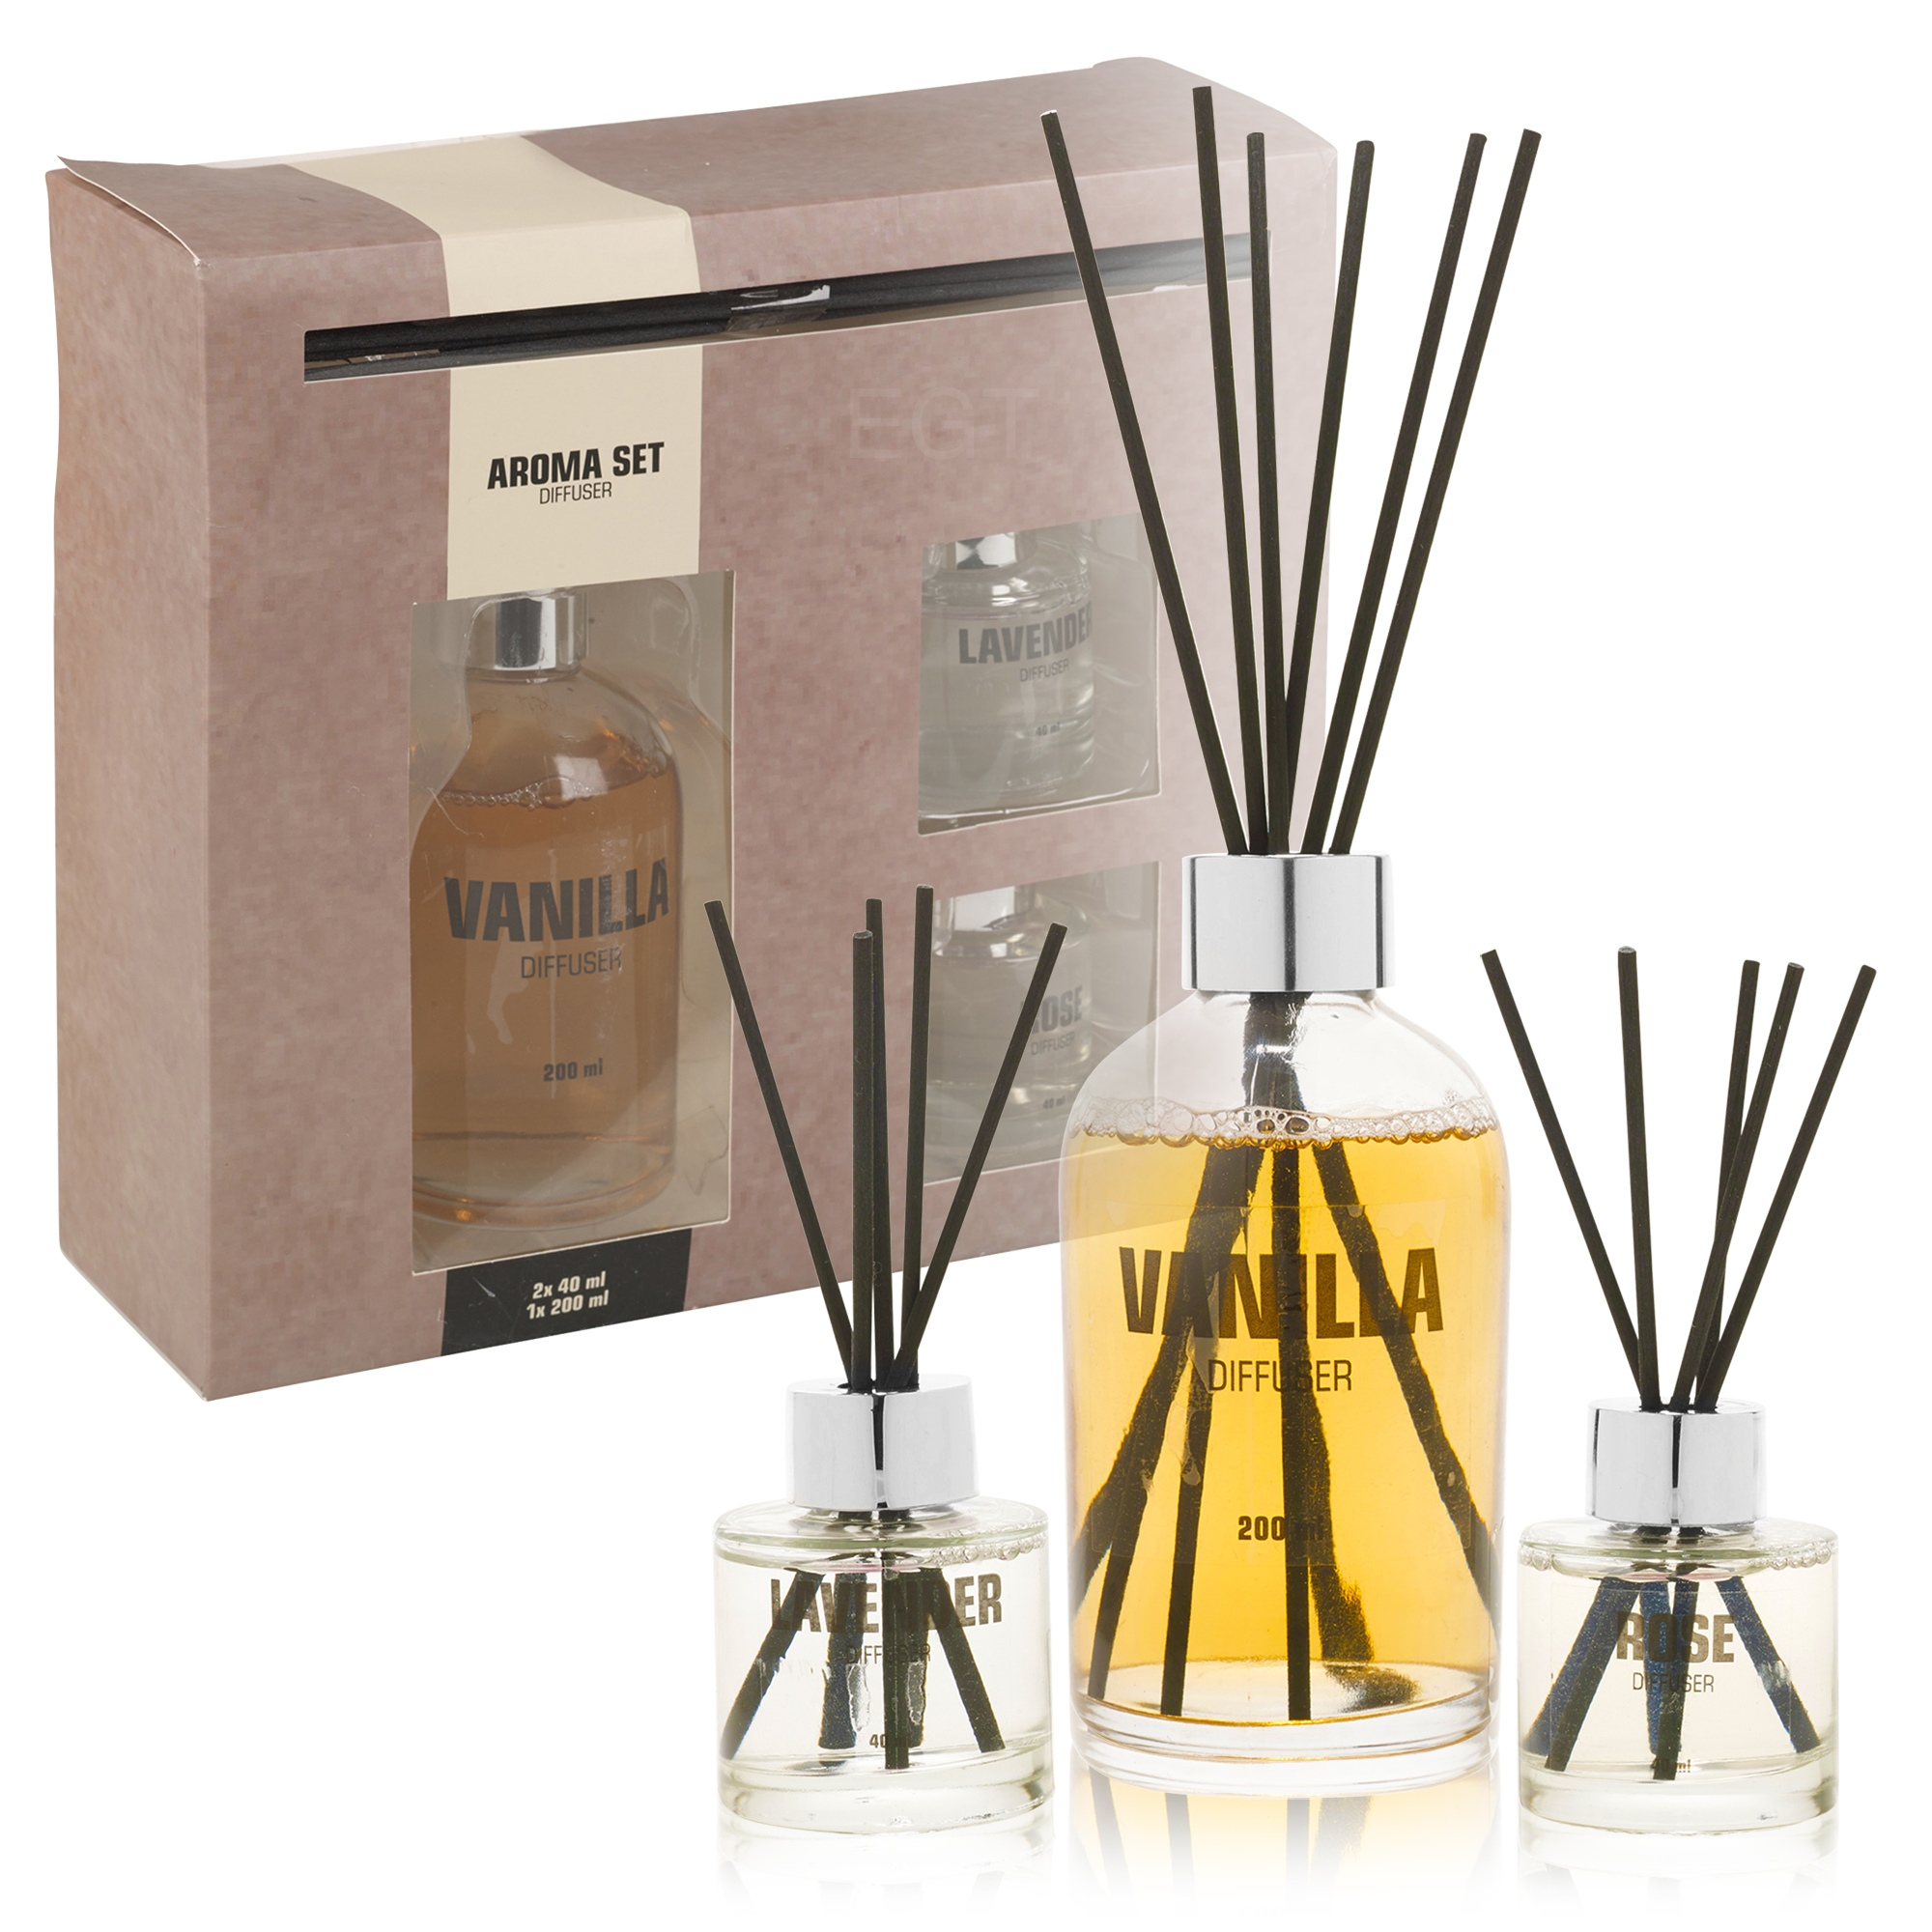 #C59506 Fragrance Reed Diffuser Aroma Gift Set 3 Scents Fragrant  Most Effective 1175 Aromatherapy Diffuser Set pictures with 2000x2000 px on helpvideos.info - Air Conditioners, Air Coolers and more